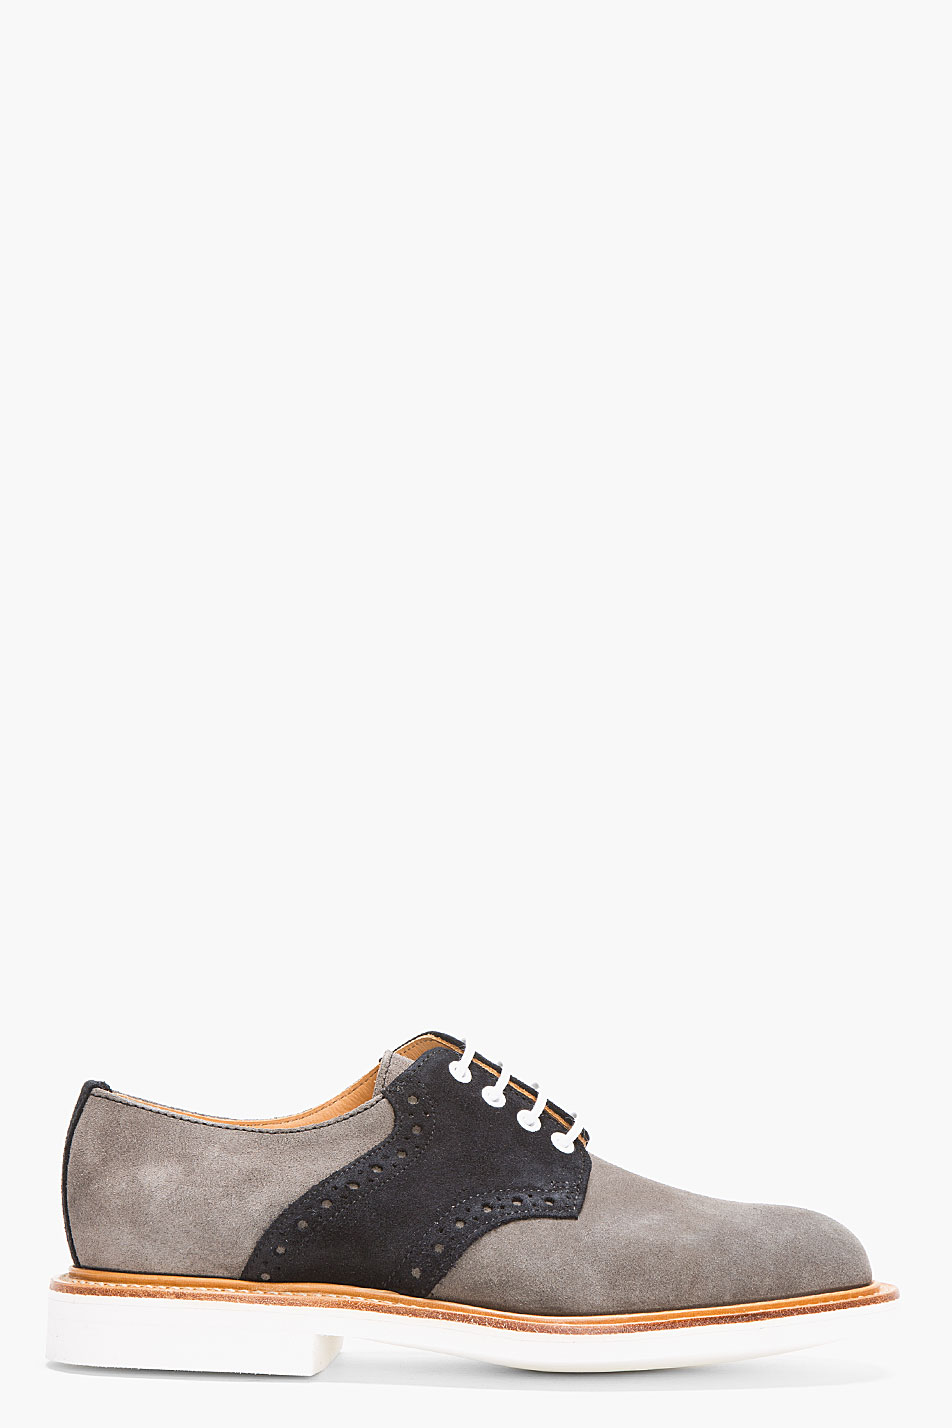 Mark McNairy AW13 Collection 7